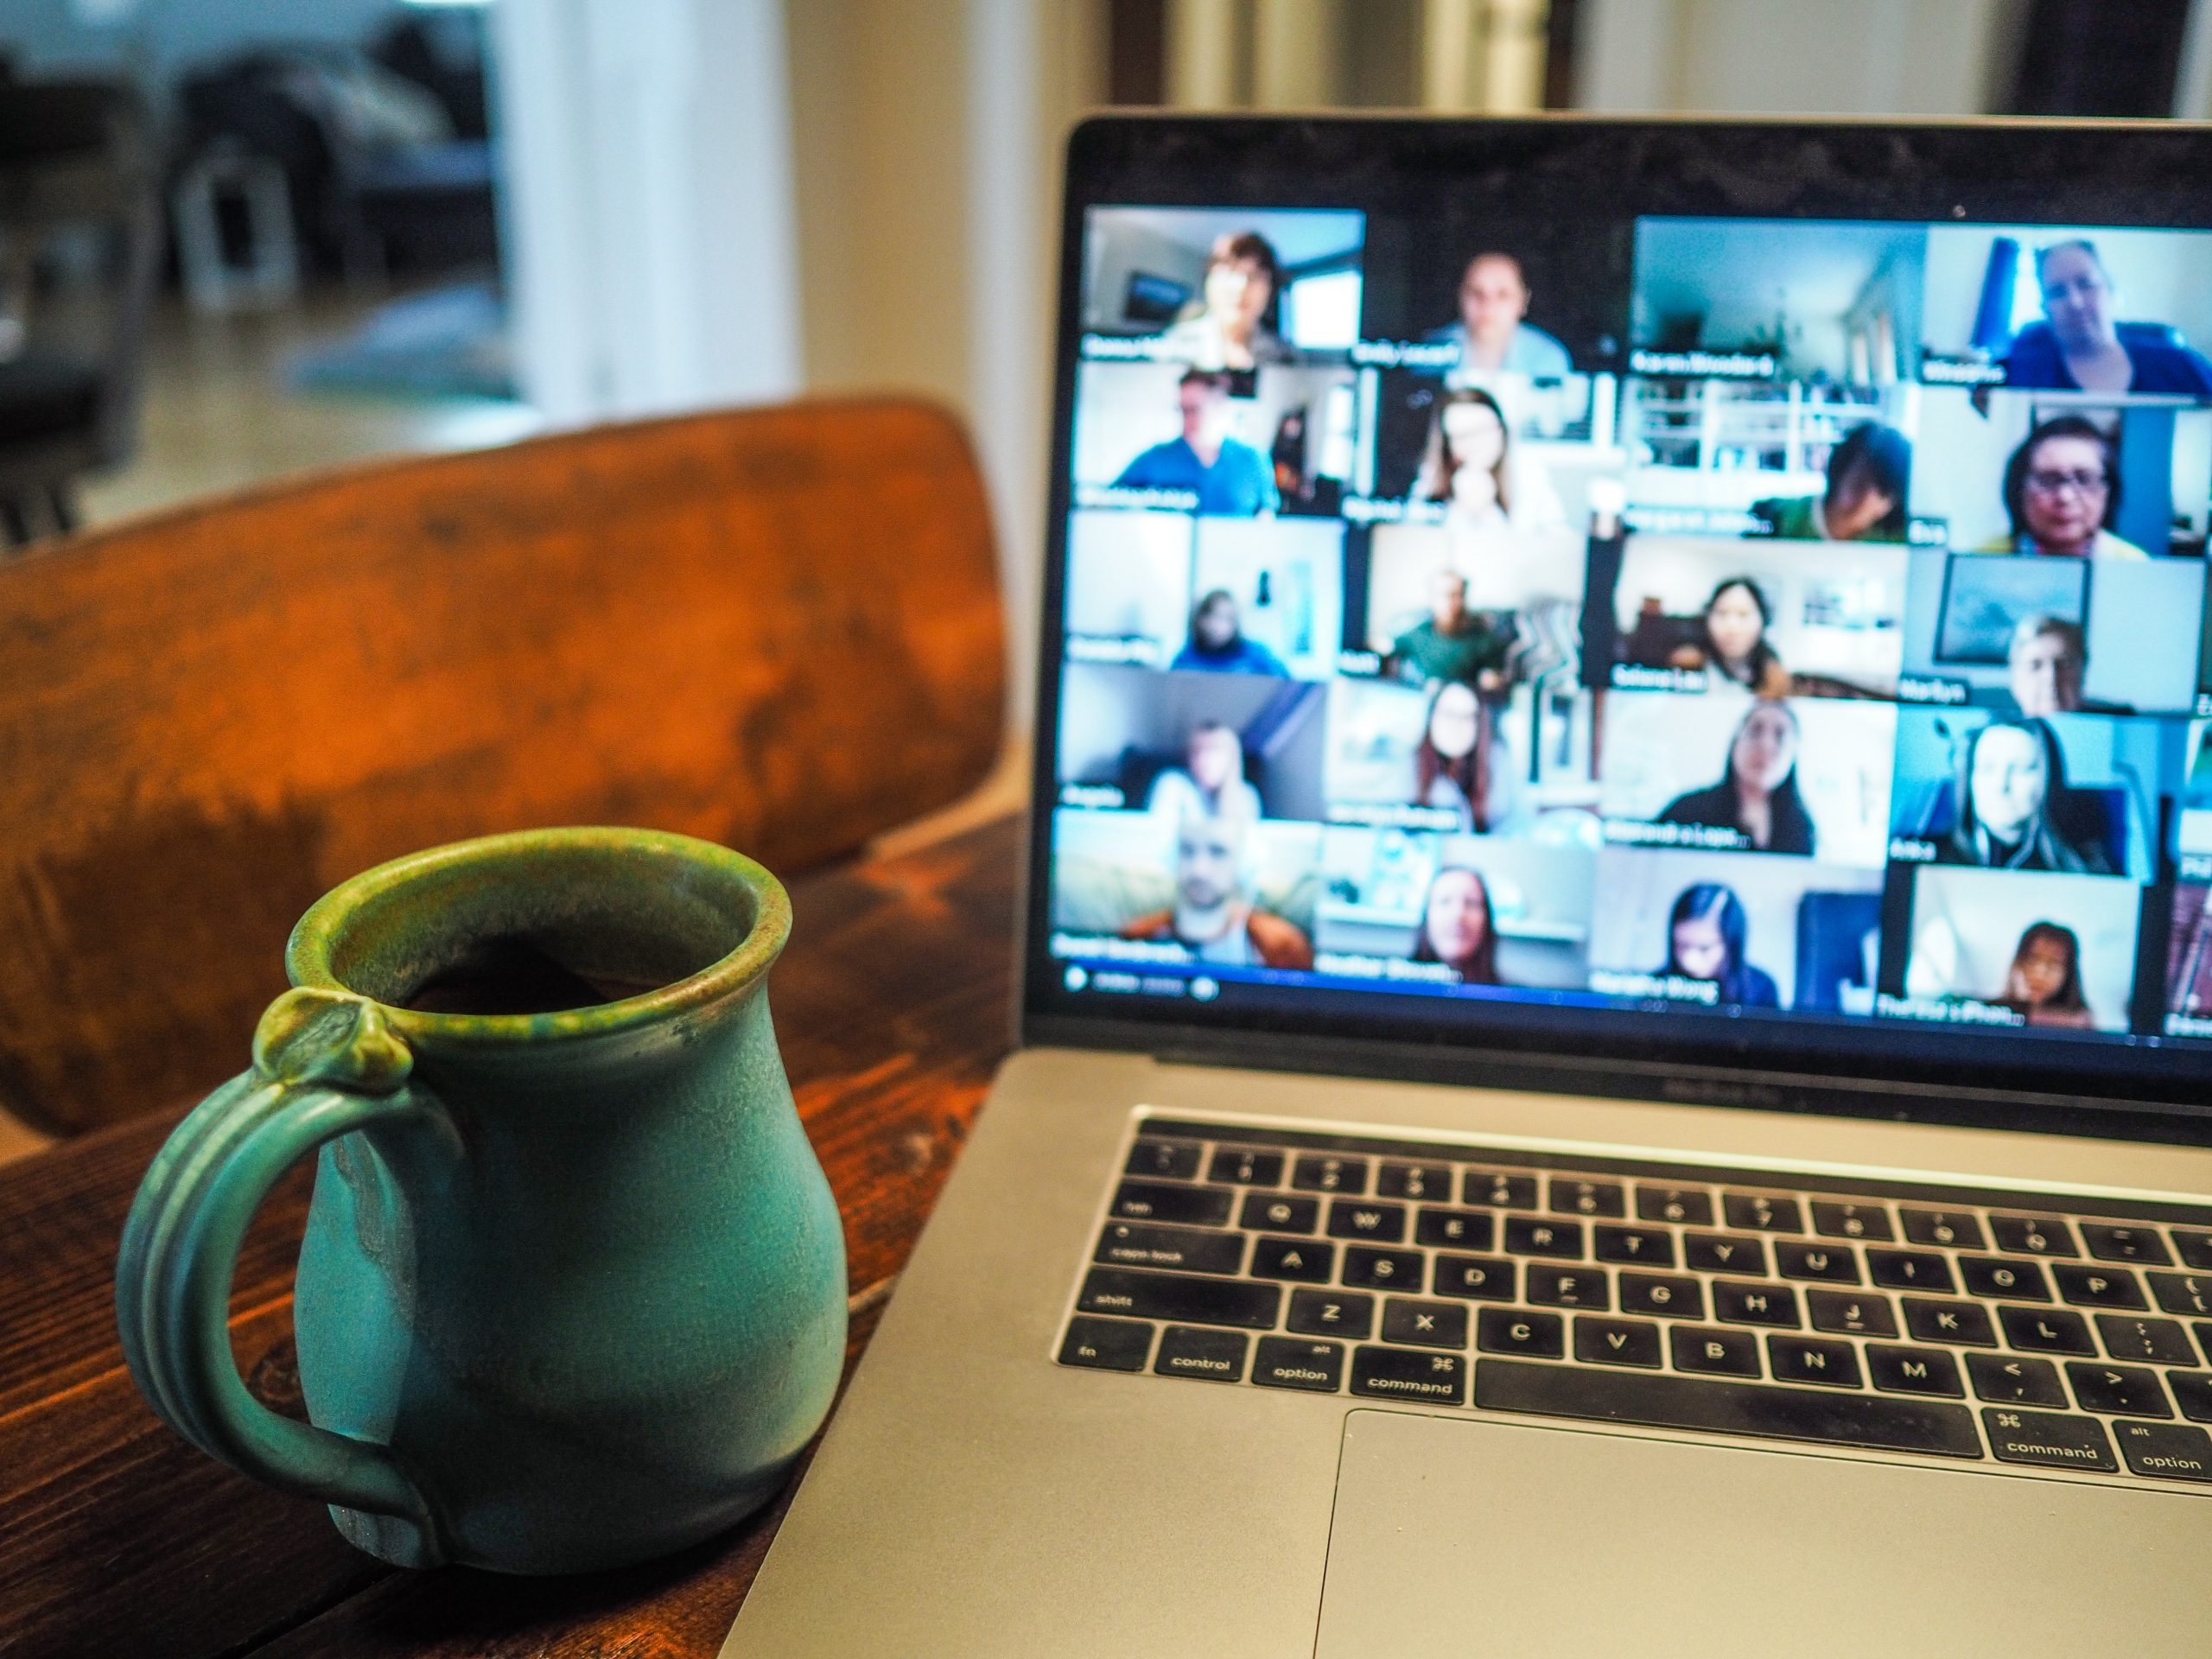 Maintain Your Relationship Sanity and Keep Your Job: 3 Tips To Working From Home With Your Spouse